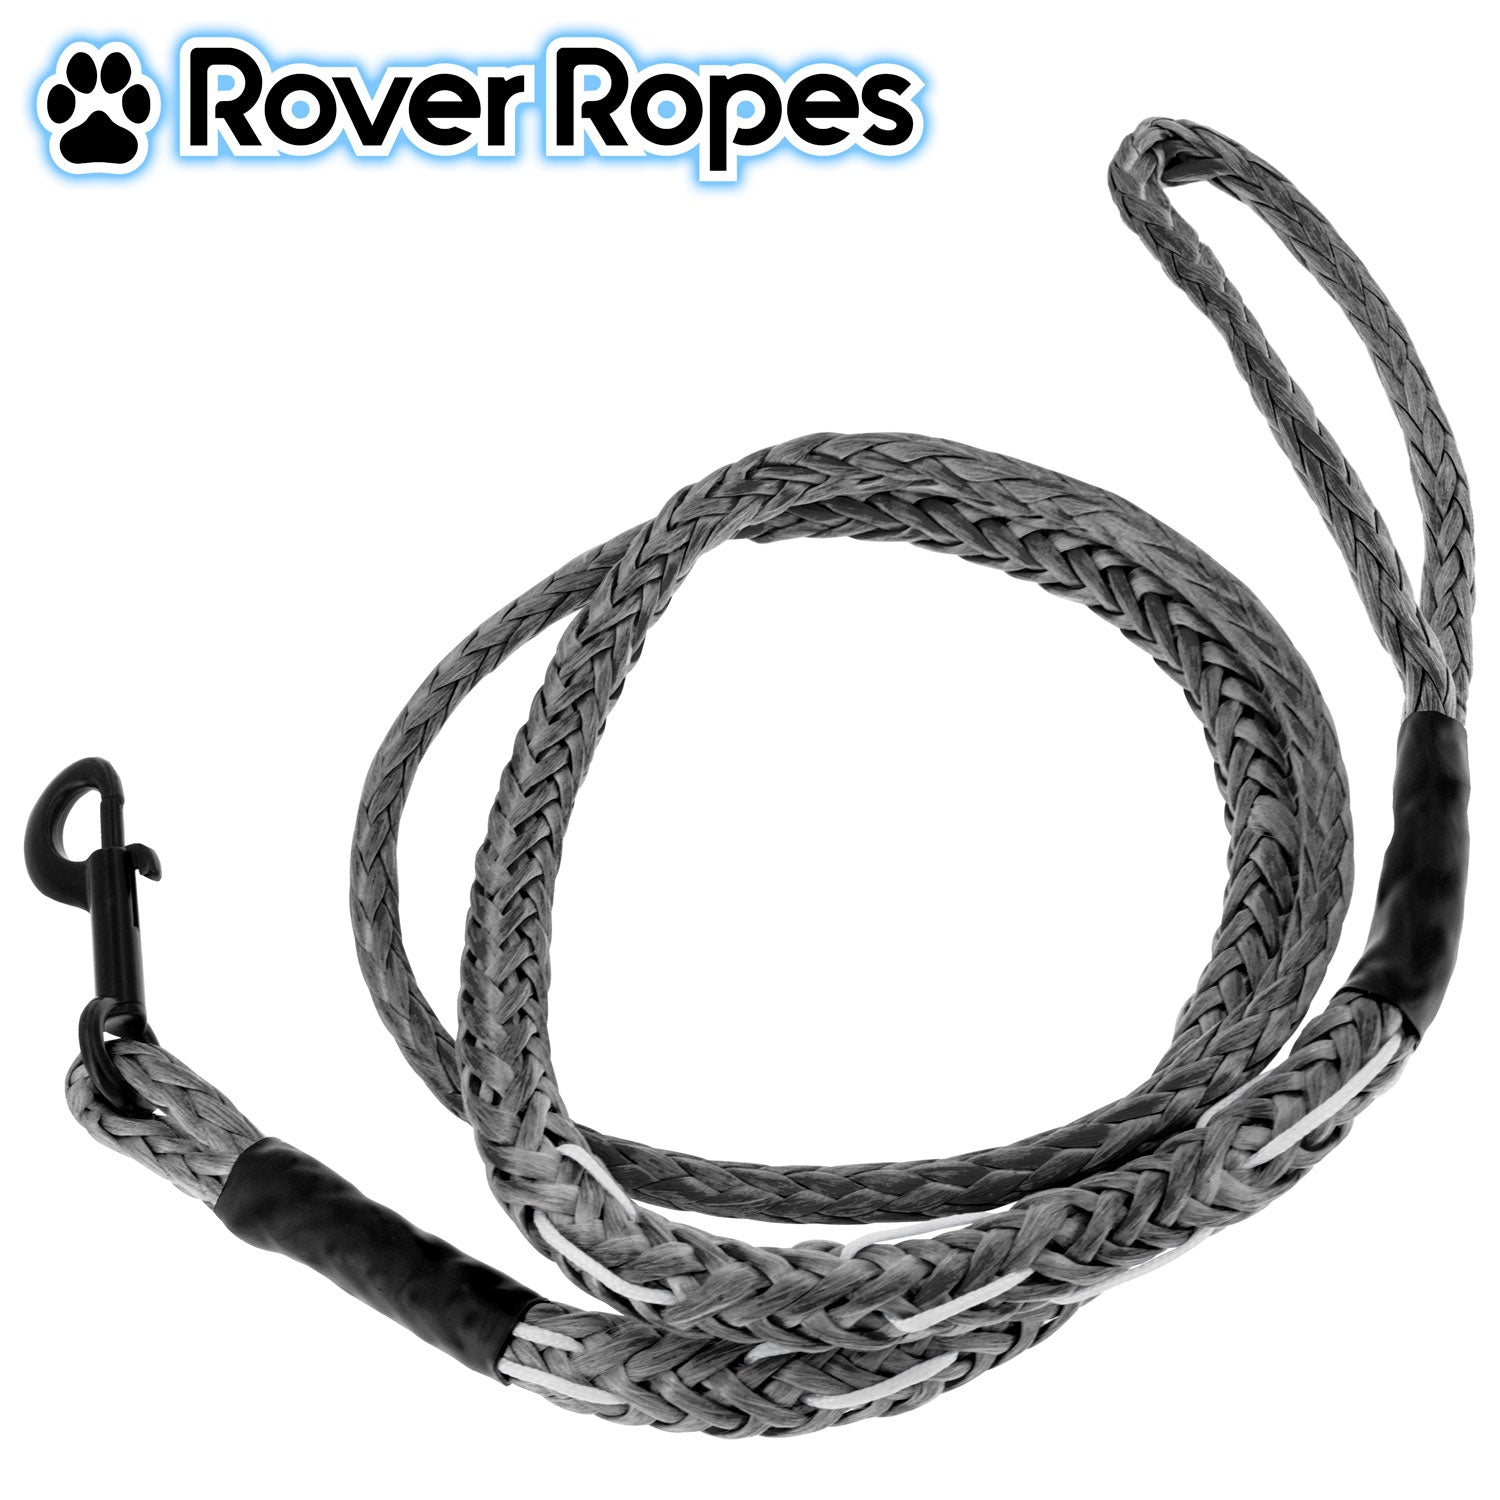 Rover Ropes - Winch Rope Dog Leash